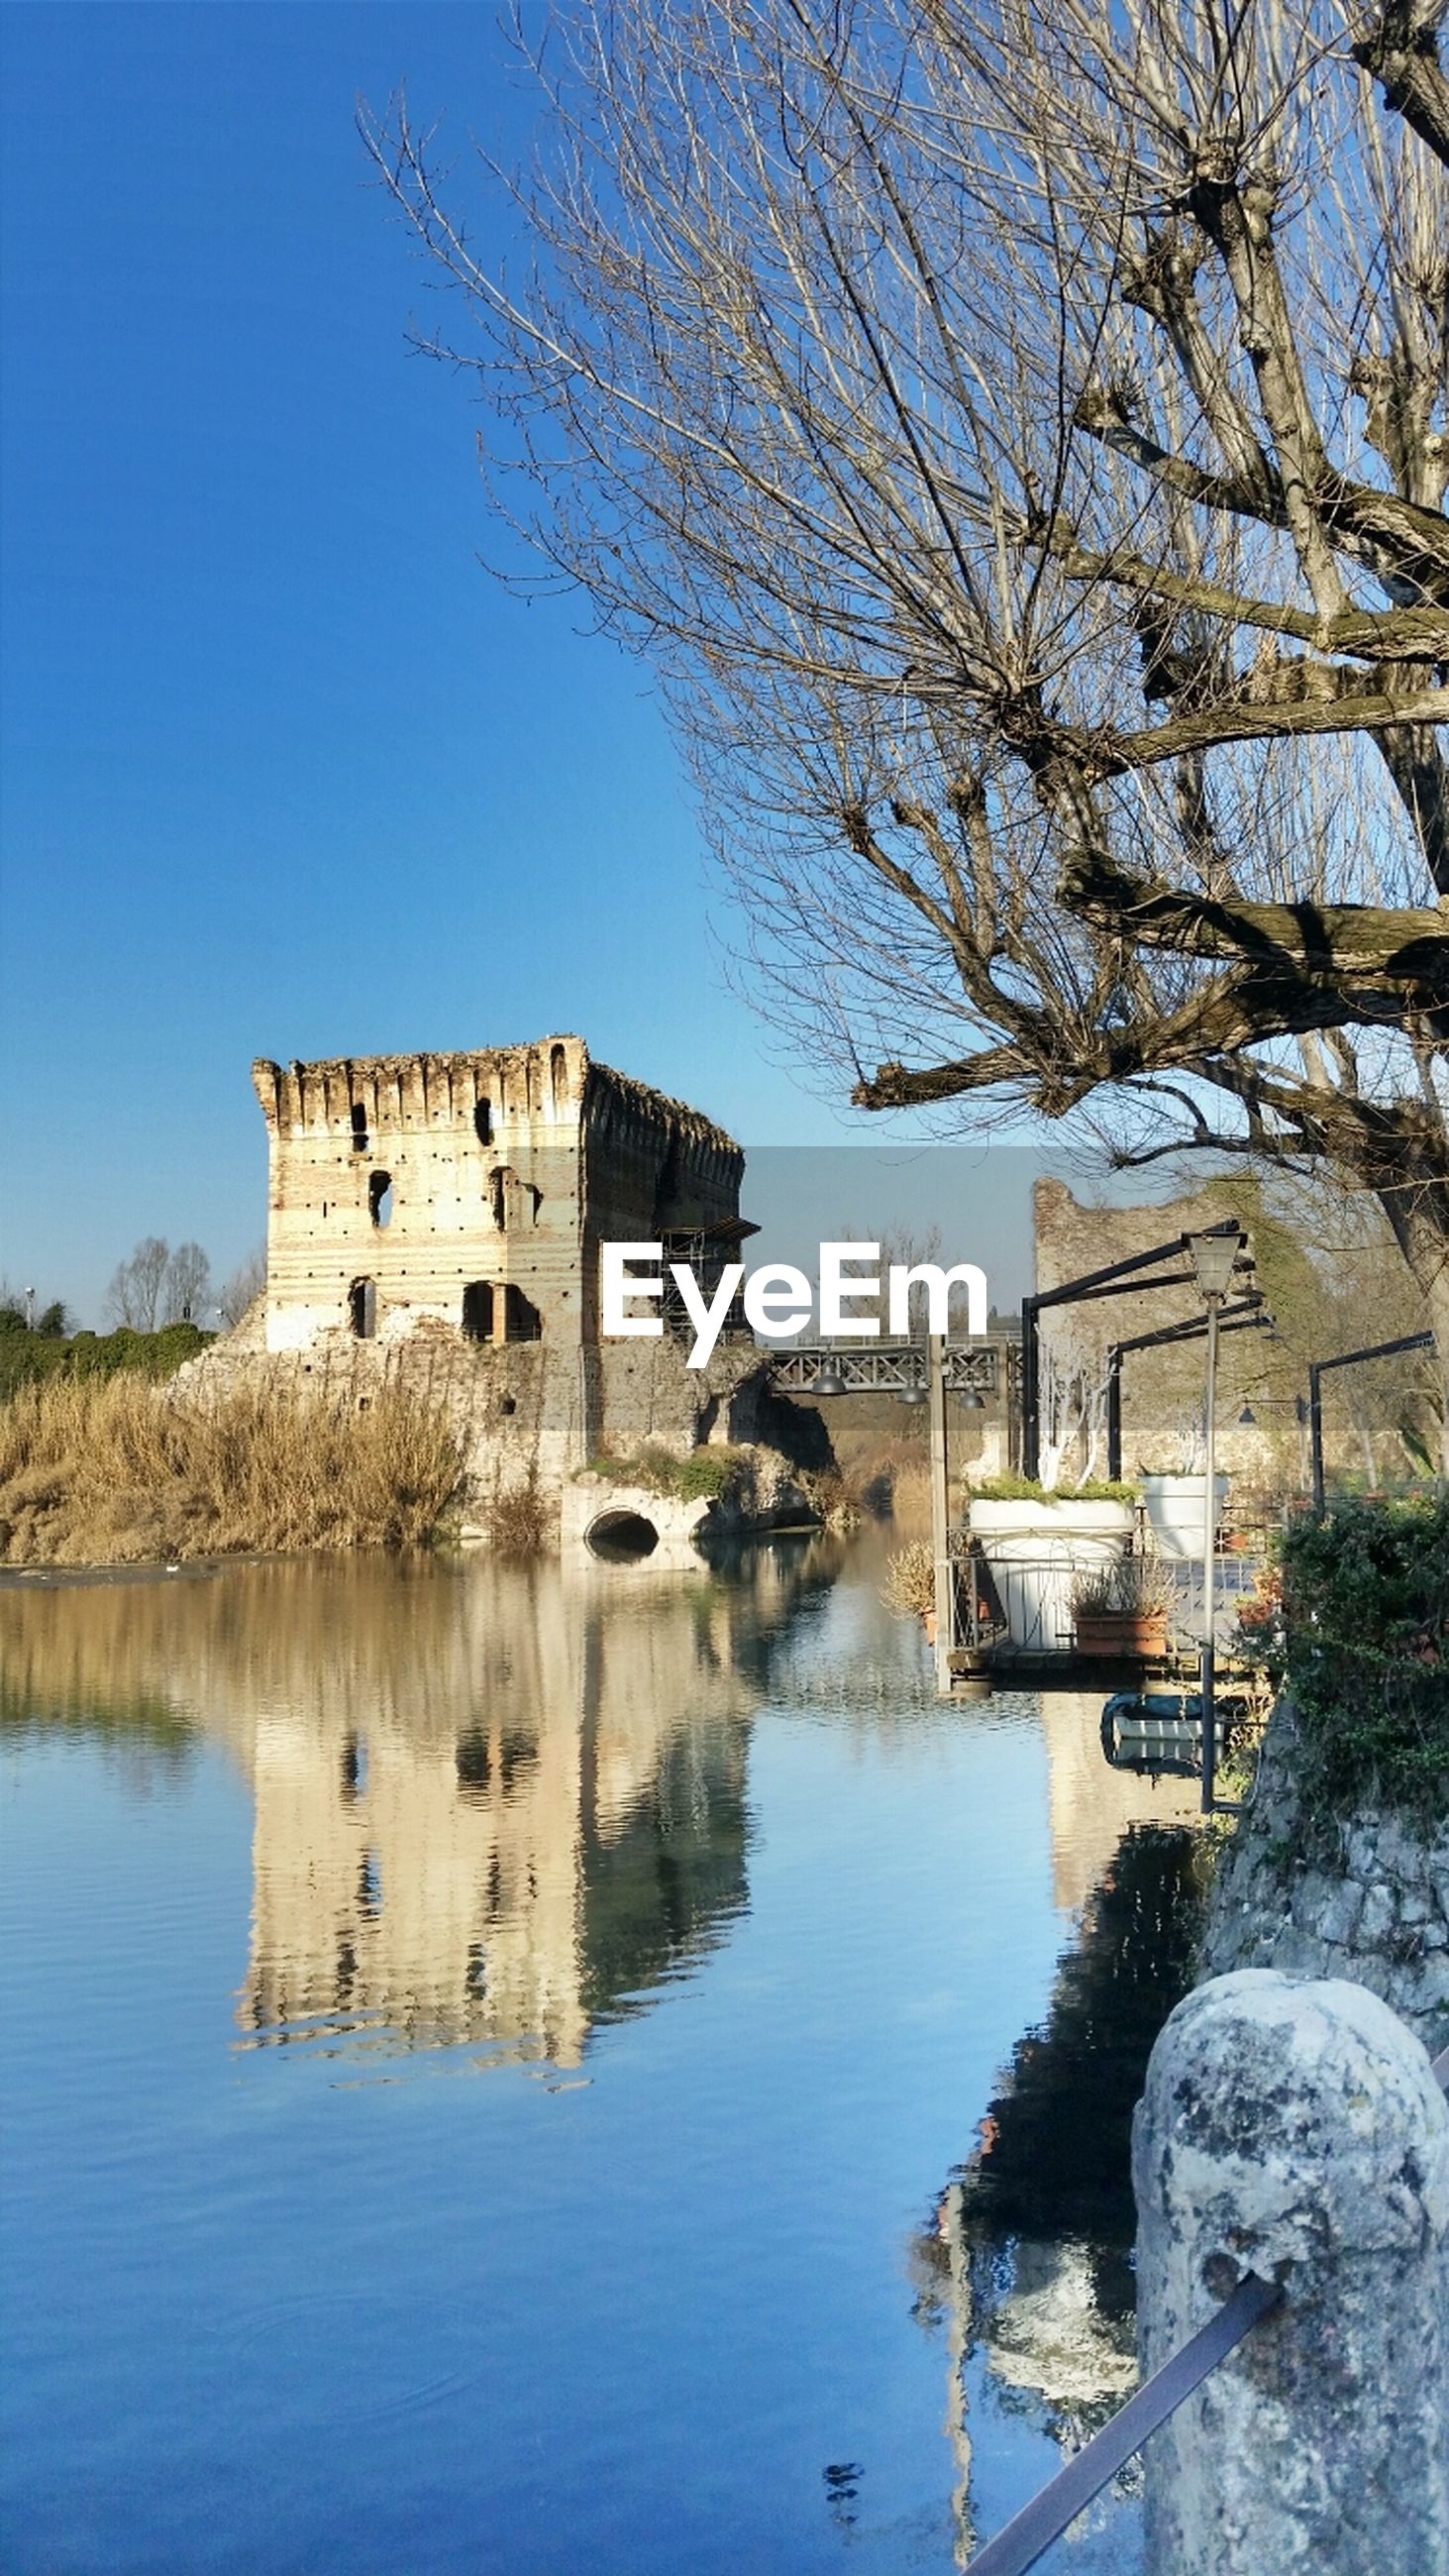 water, architecture, building exterior, built structure, tree, clear sky, nautical vessel, waterfront, transportation, river, reflection, mode of transport, day, nature, lake, outdoors, boat, house, old, bare tree